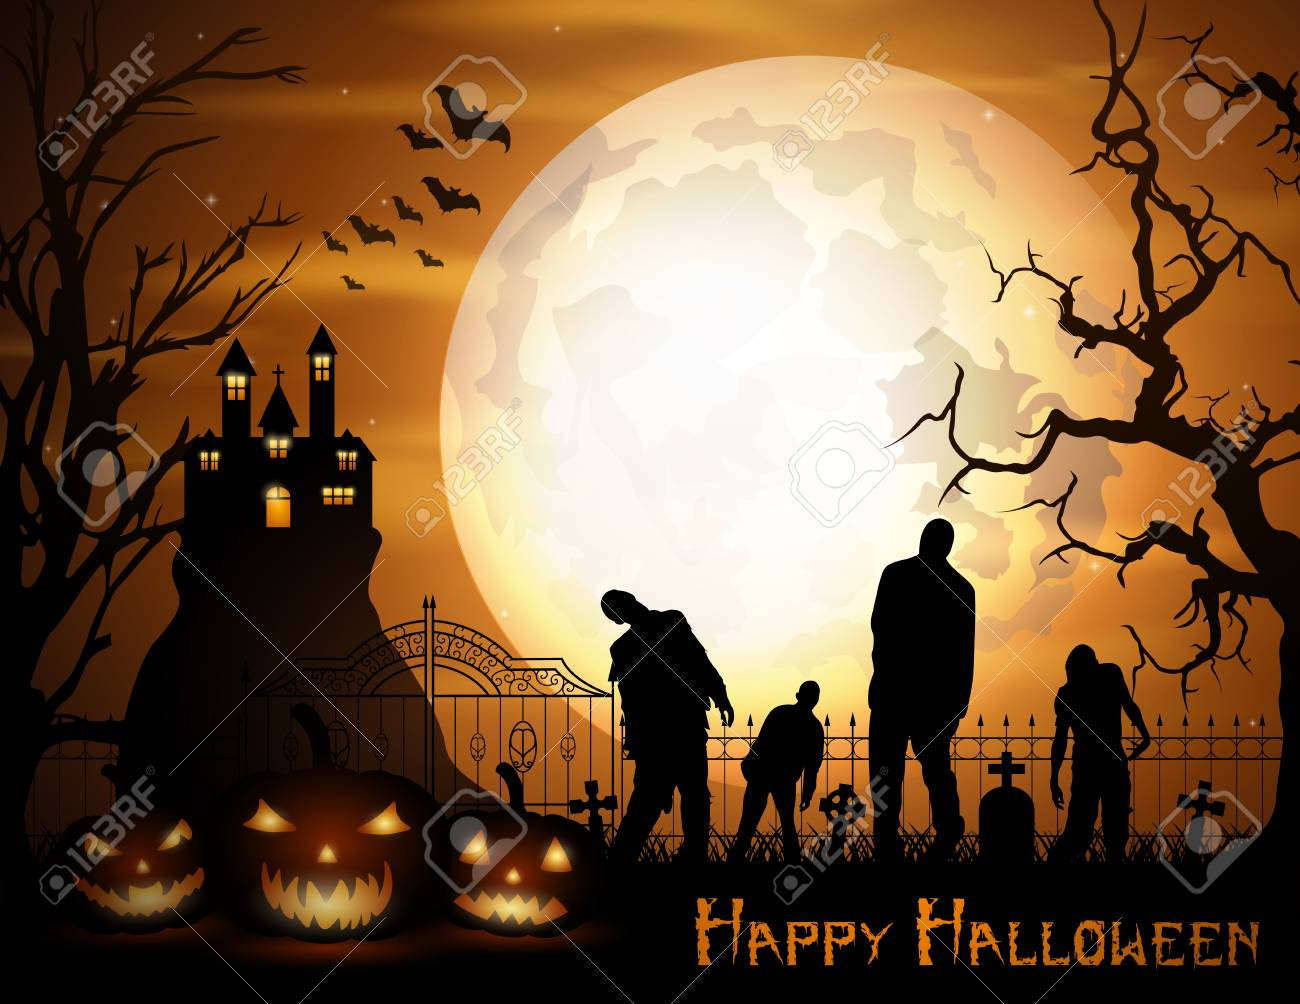 Halloween background with pumpkins, zombie, and scary church